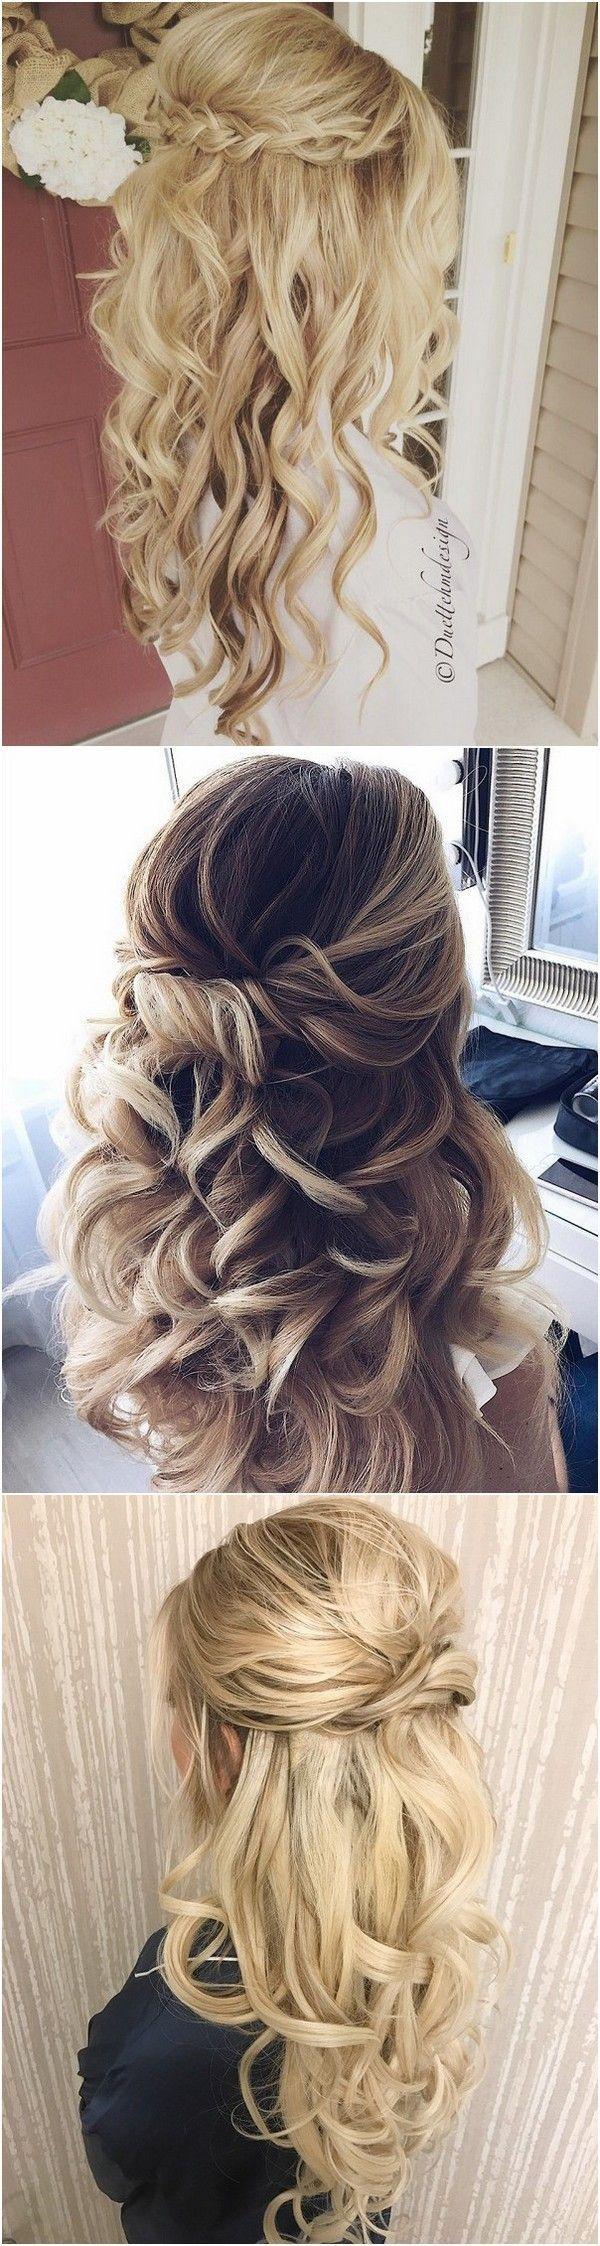 Awesome wedding hairstyles half up half down hair pinterest